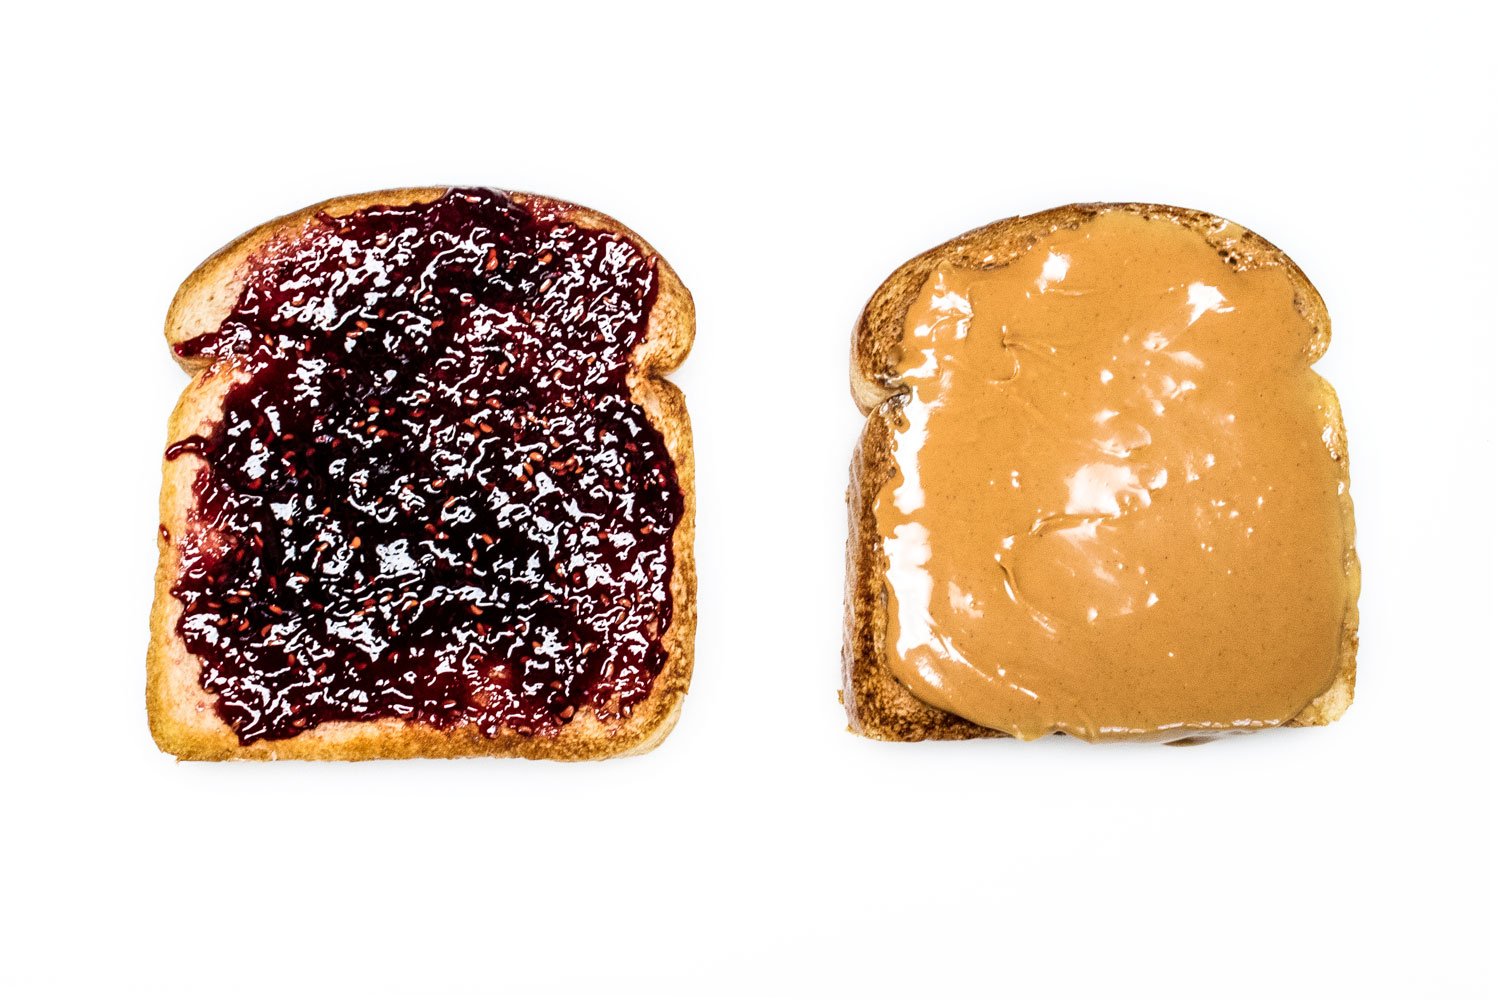 Peanut Butter and Jelly